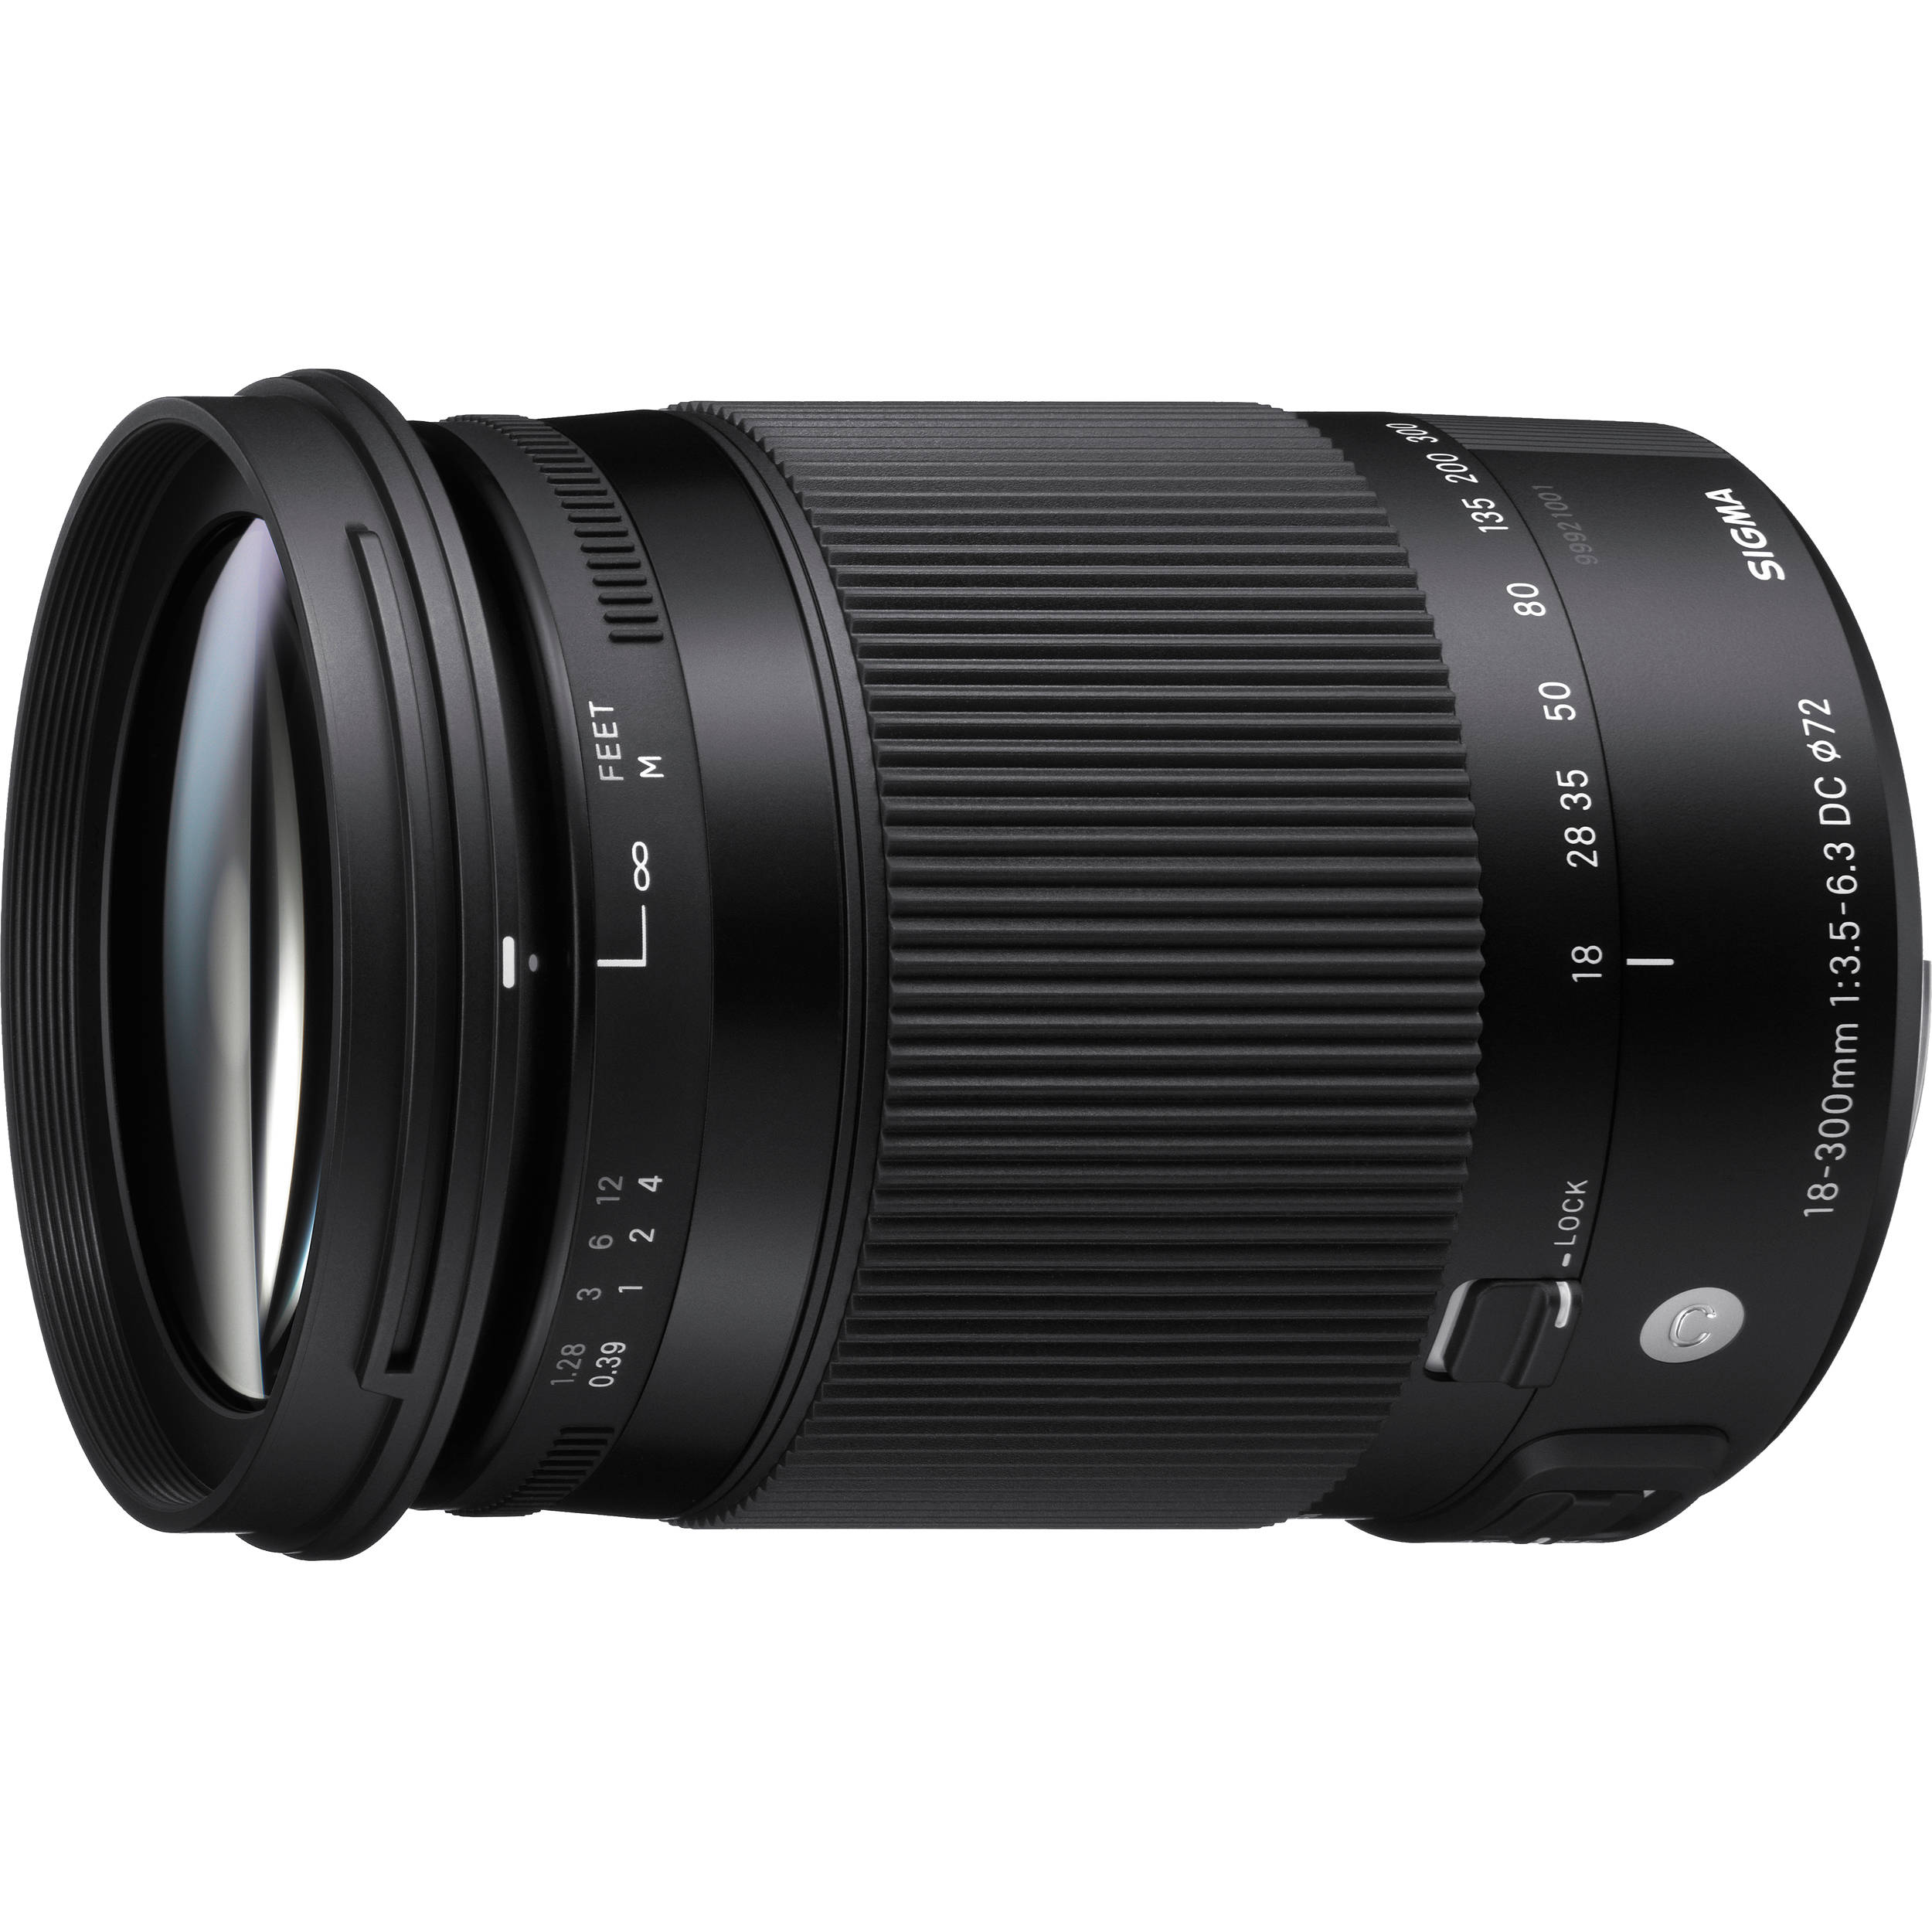 Sigma 18 300mm F 35 63 Dc Macro Os Hsm Contemporary 886306 Bh Police Line Barricade Tape 3 Inch X 300 Meter M Lens For